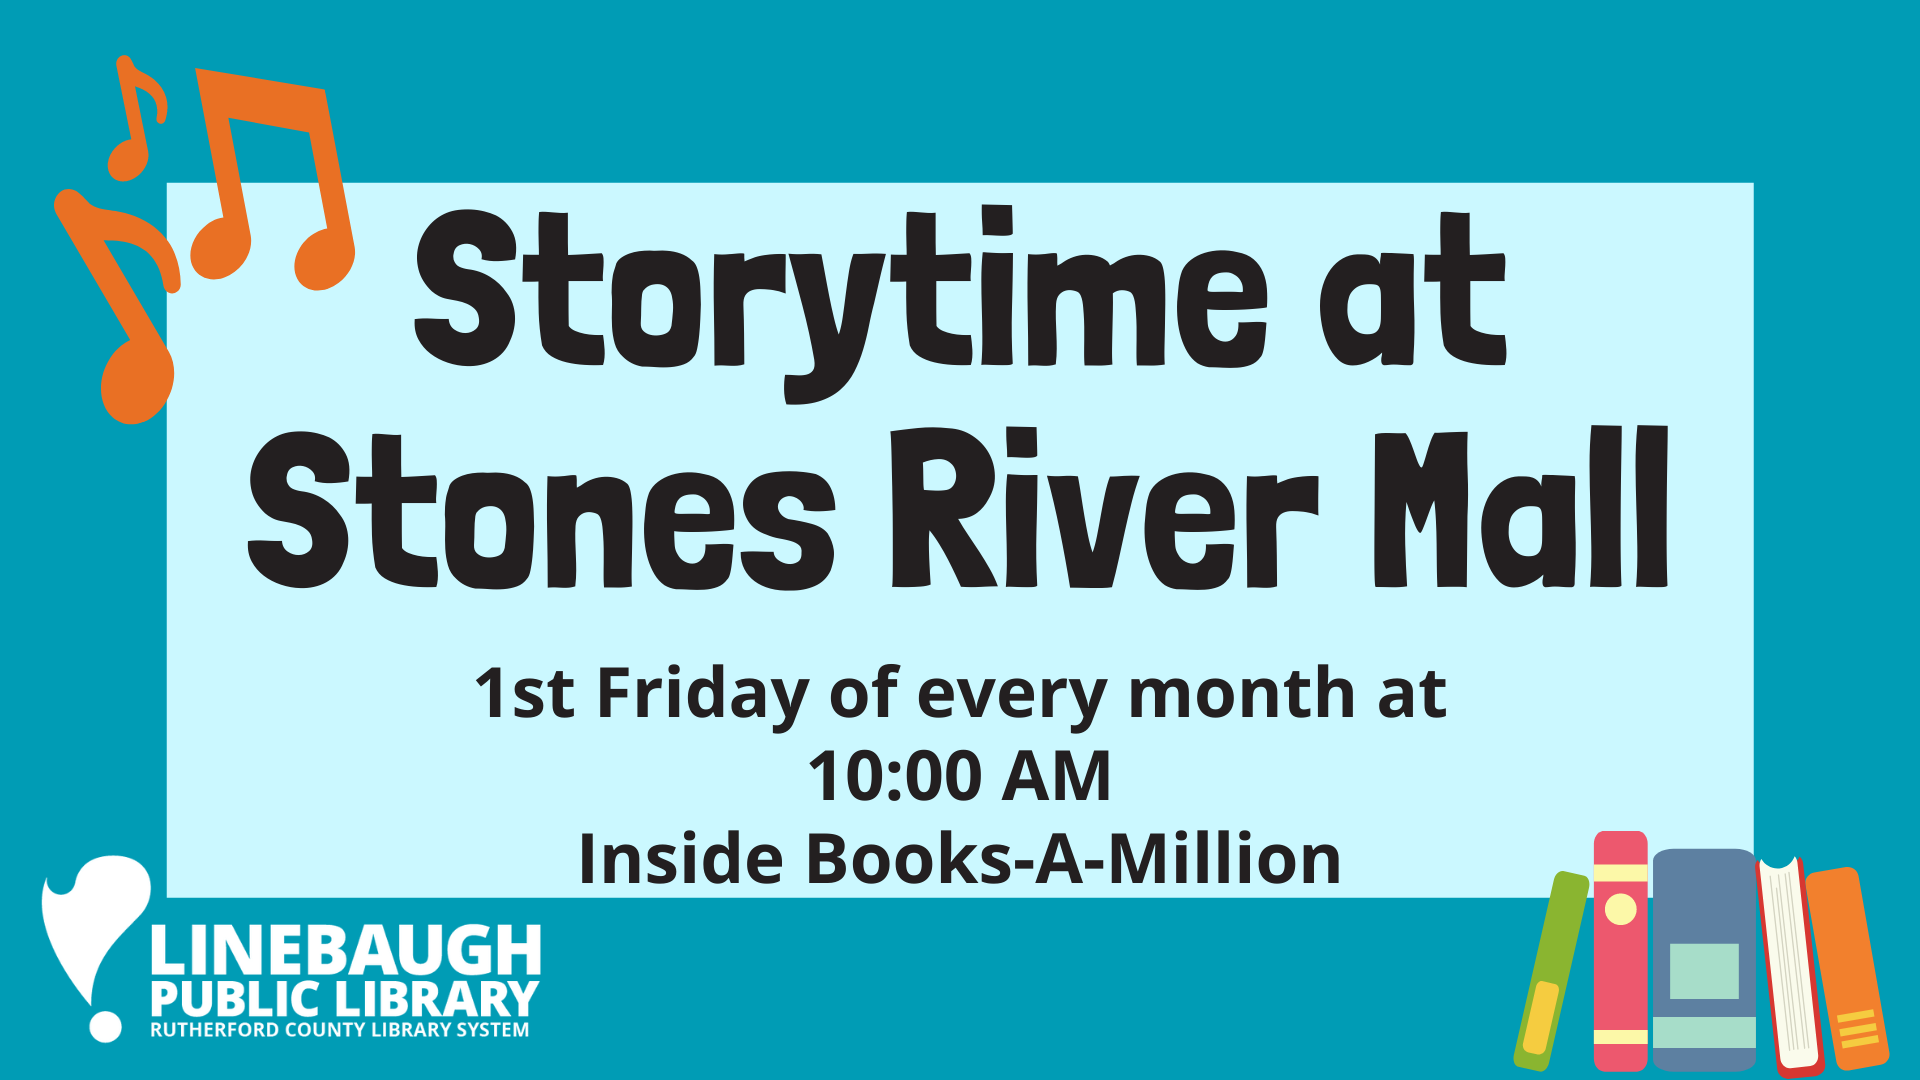 Storytime at Stones River Mall